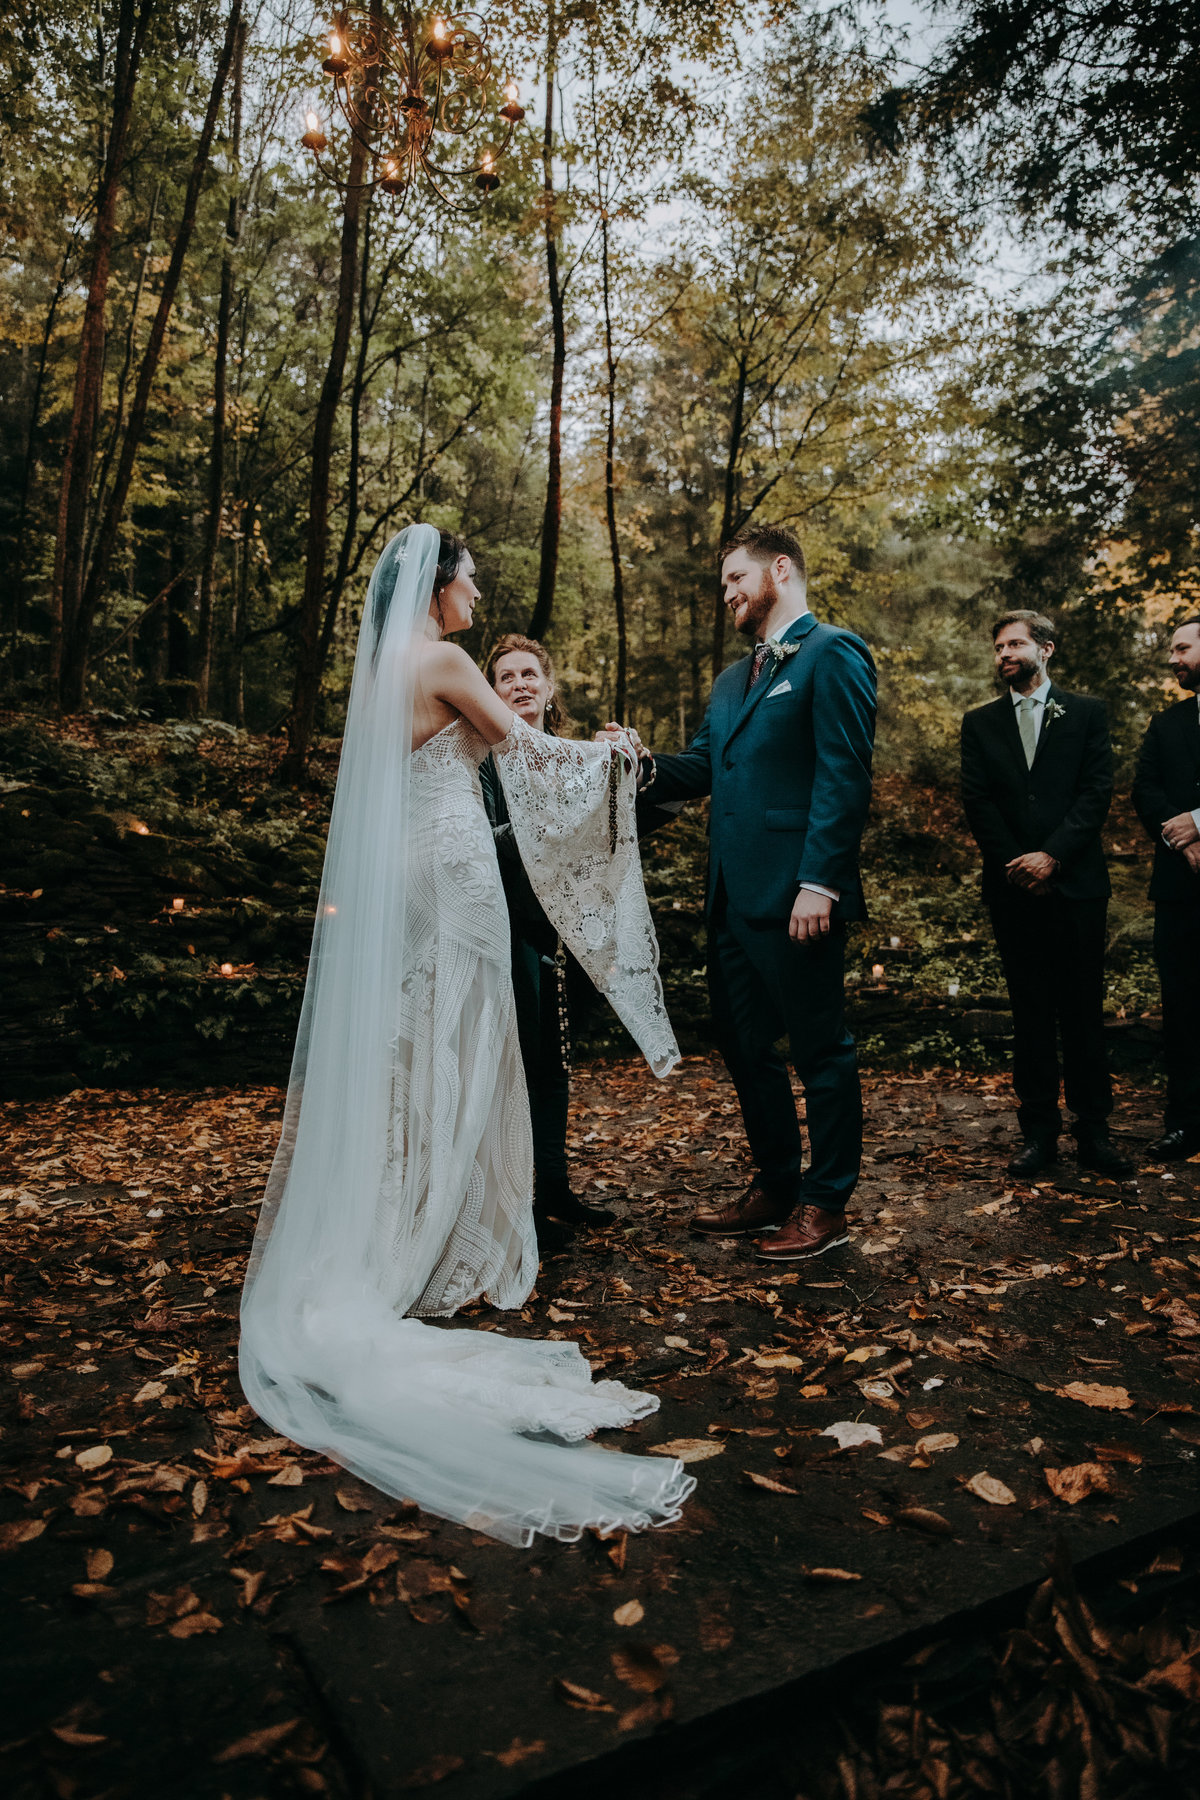 CatskillsJulietandEric2019WeddingPhotography (86 of 213)